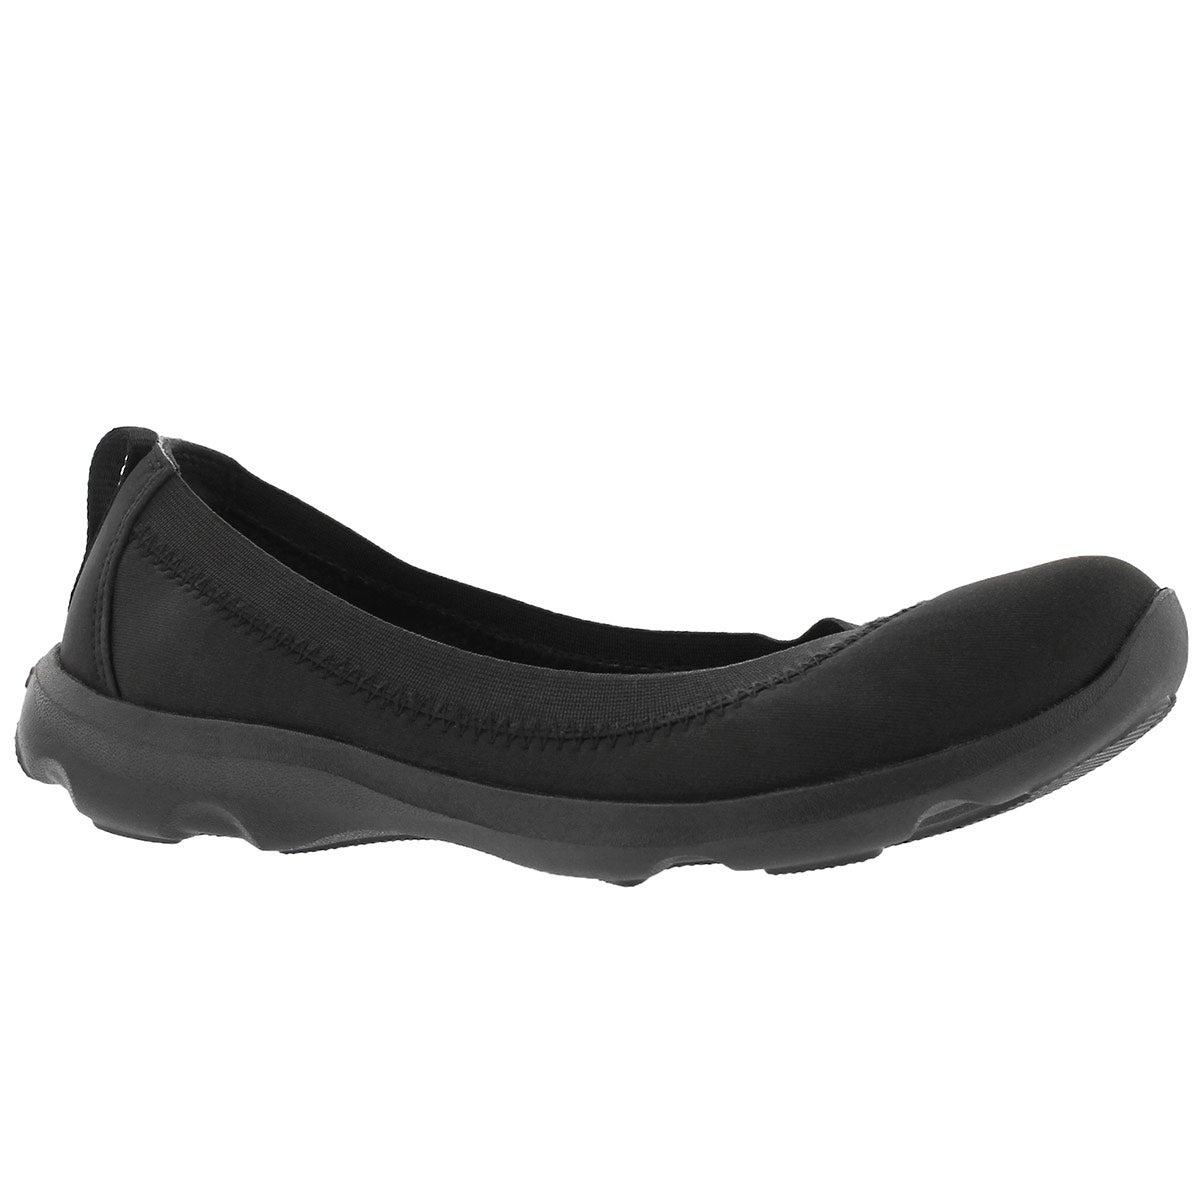 Women's BUSY DAY STRETCH black casual flats